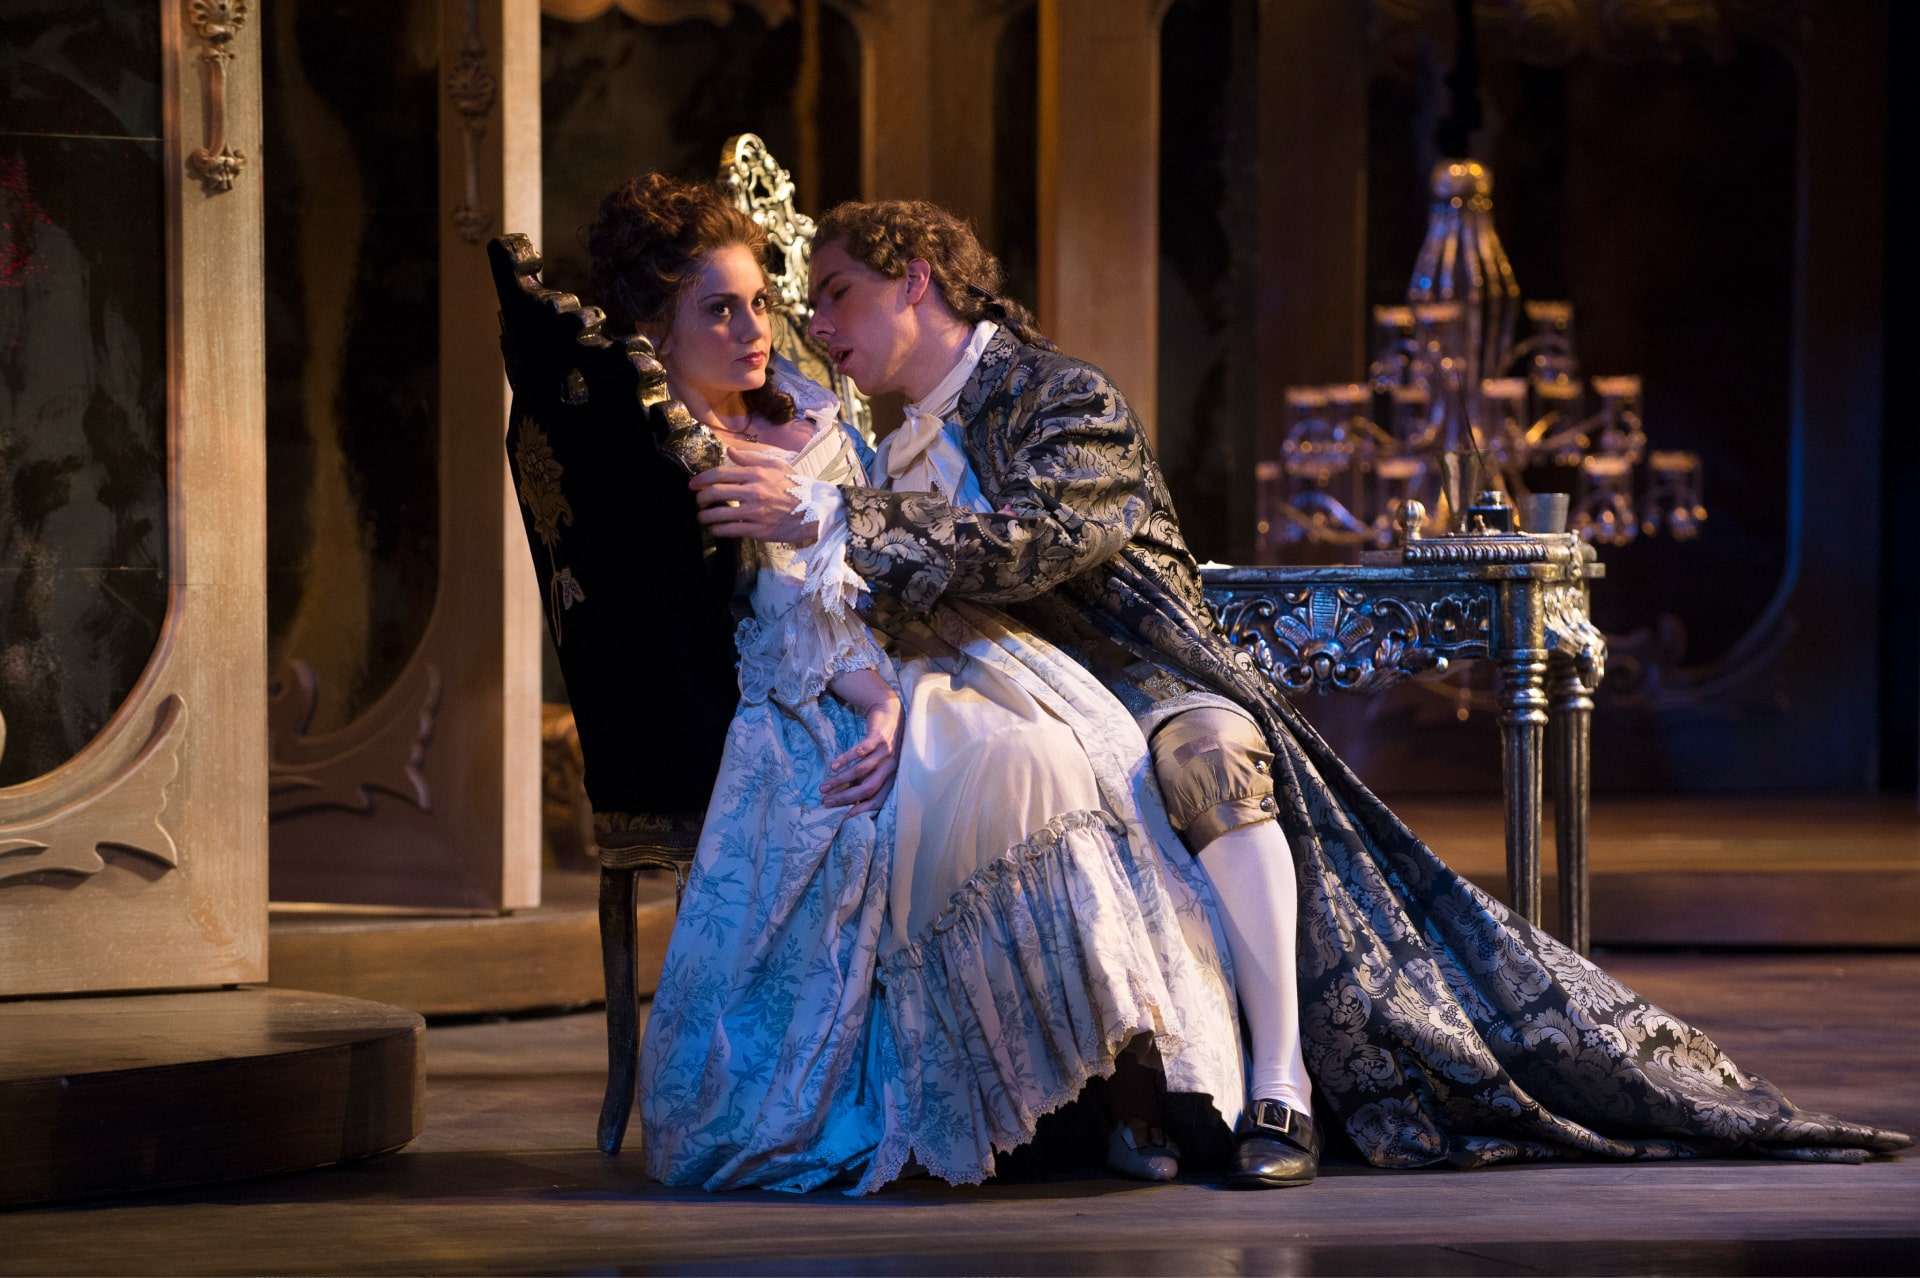 Man in brocade frock coat embraces bored woman in pleated white gown seated on desk chair.